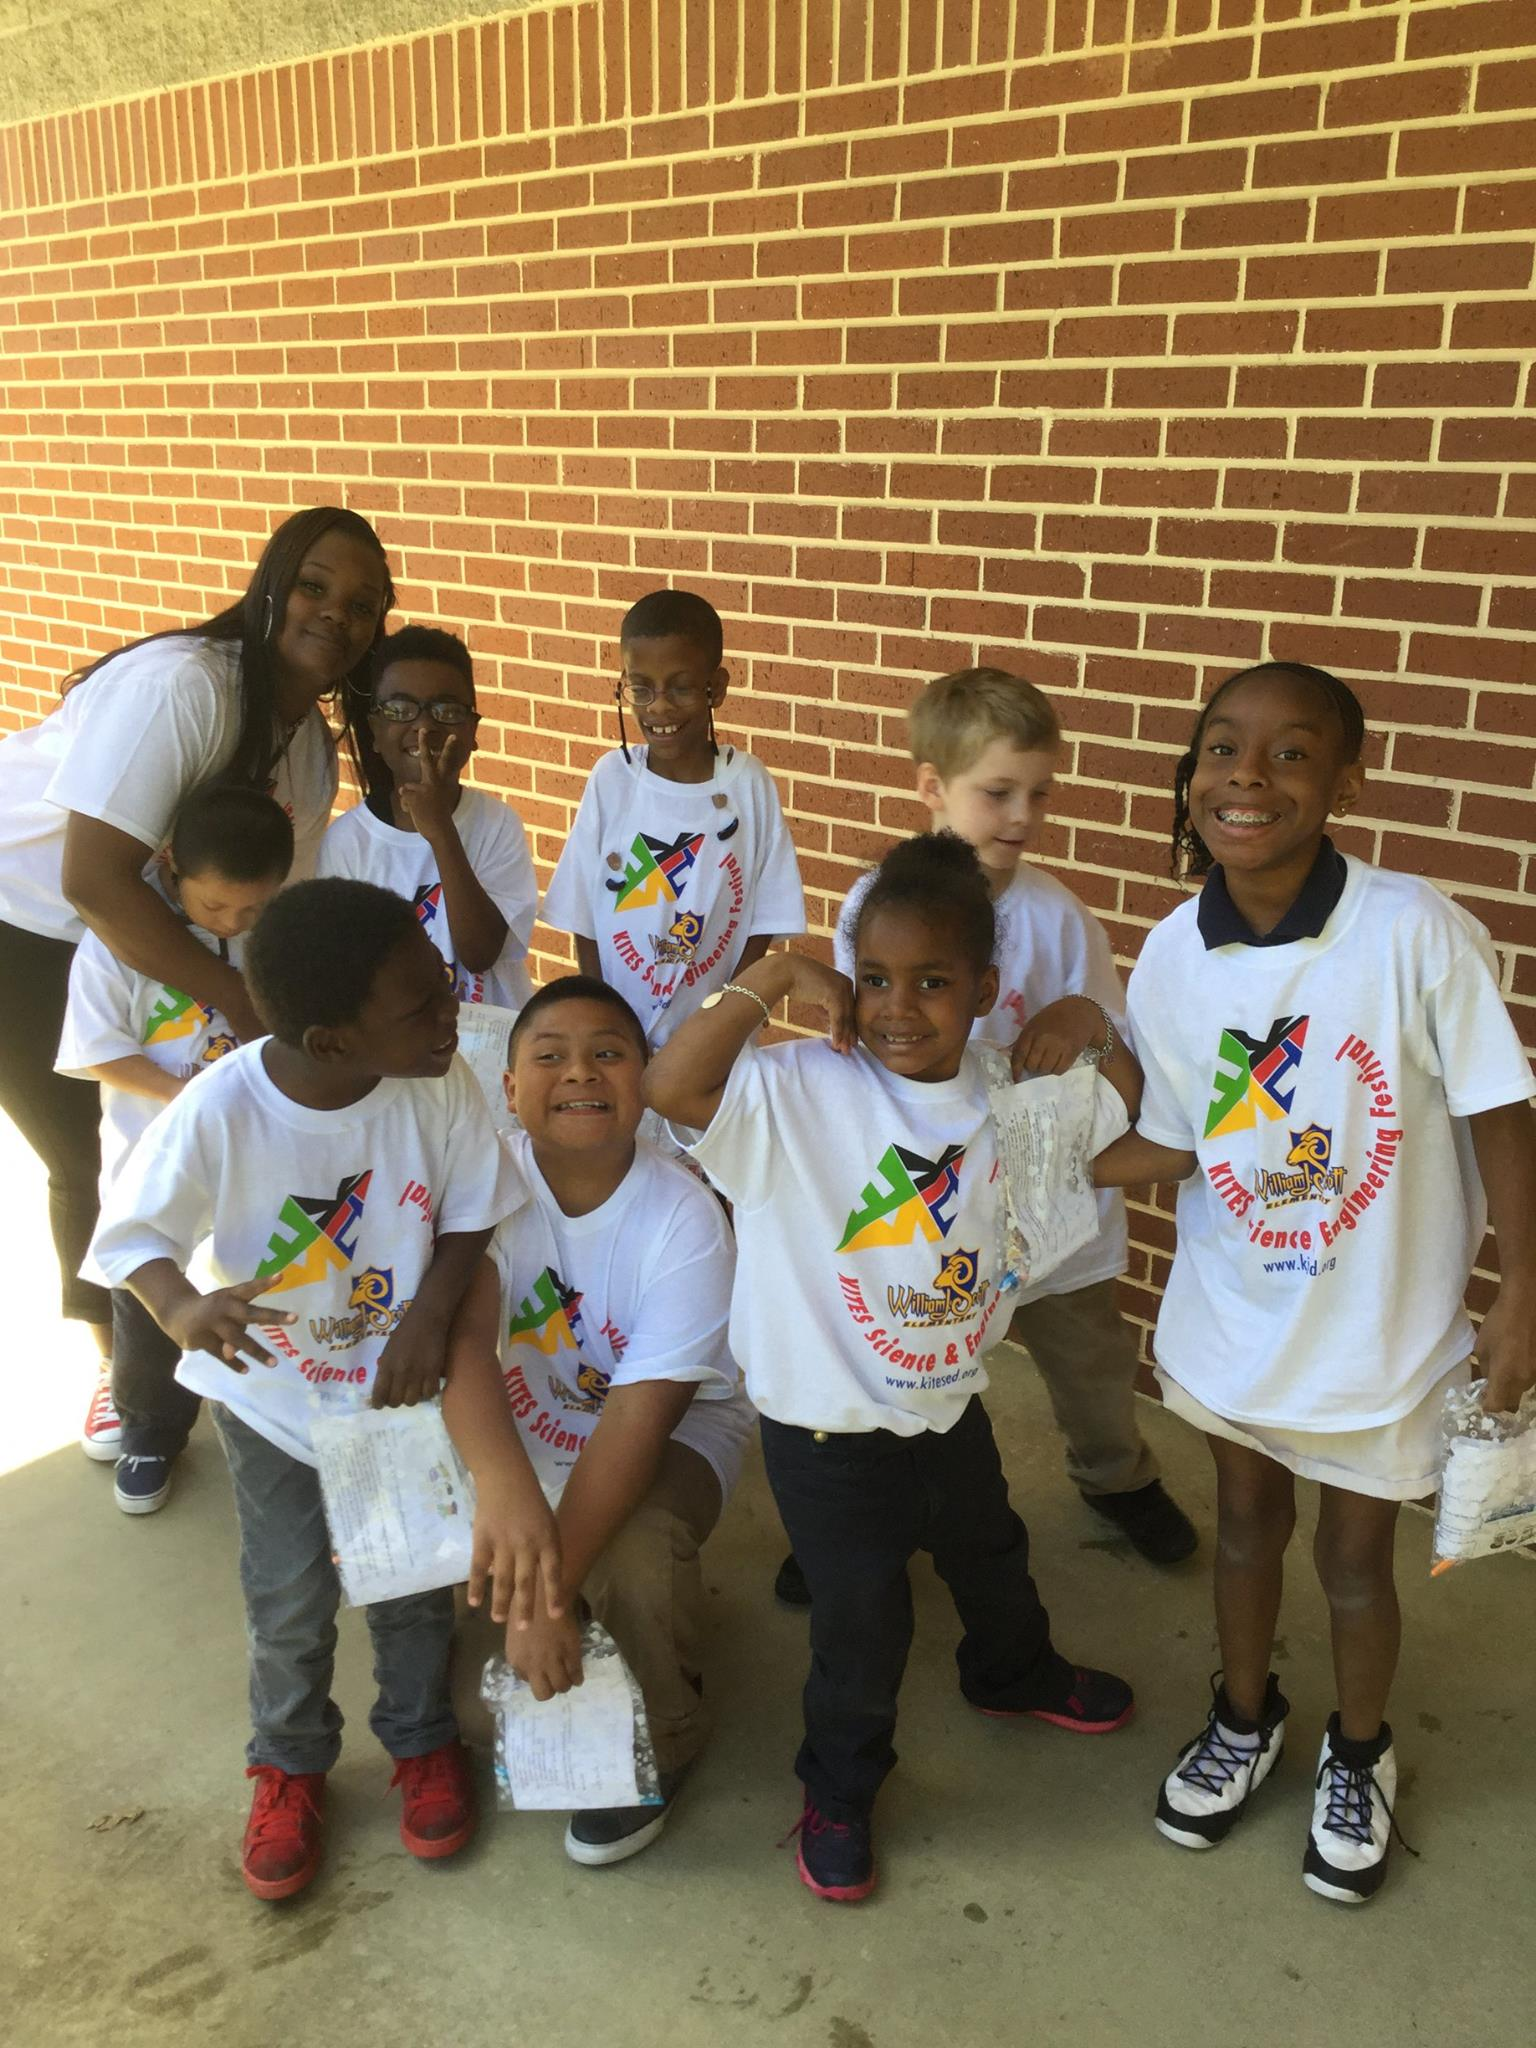 <div style='color:#000000;'><br /><br /><h2>2017 KITES Festival. ECOGIG brought the Ocean Discovery Zone to approximately 200 students at Scott Elementary in Atlanta, GA. This was part of a larger event called the KITES (Kids Interested in Technology, Engineering and Science) festival.</h2>(c) ECOGIG</div>